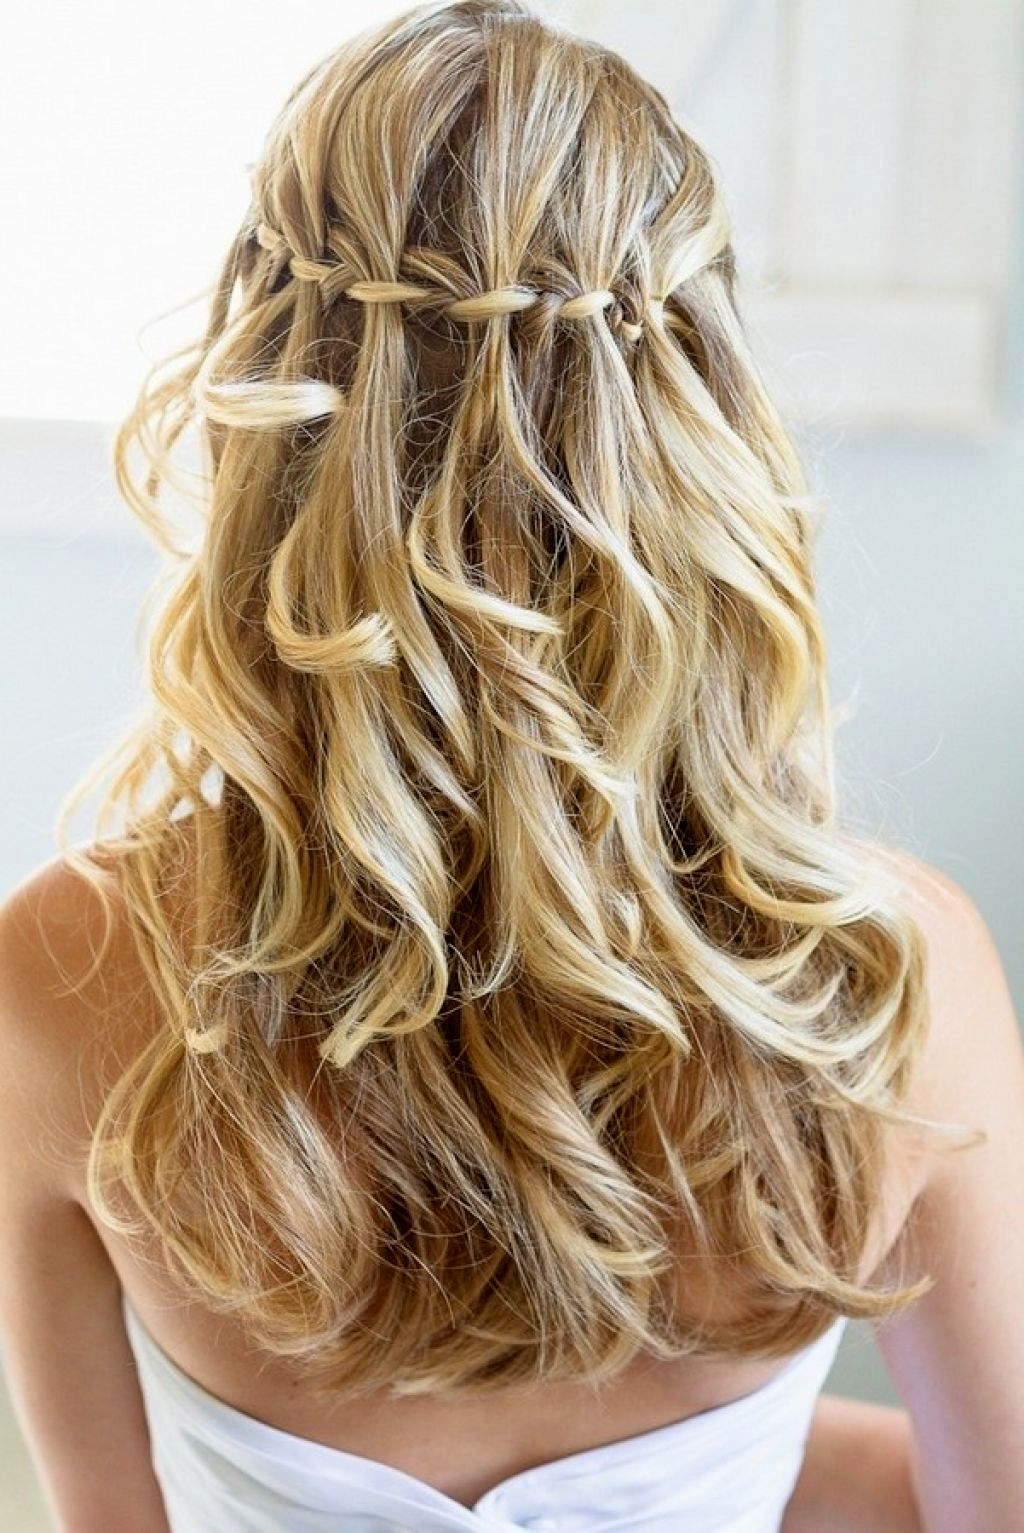 Excellent Hairstyles Festive Image Superb Hairstyles Festive Layout